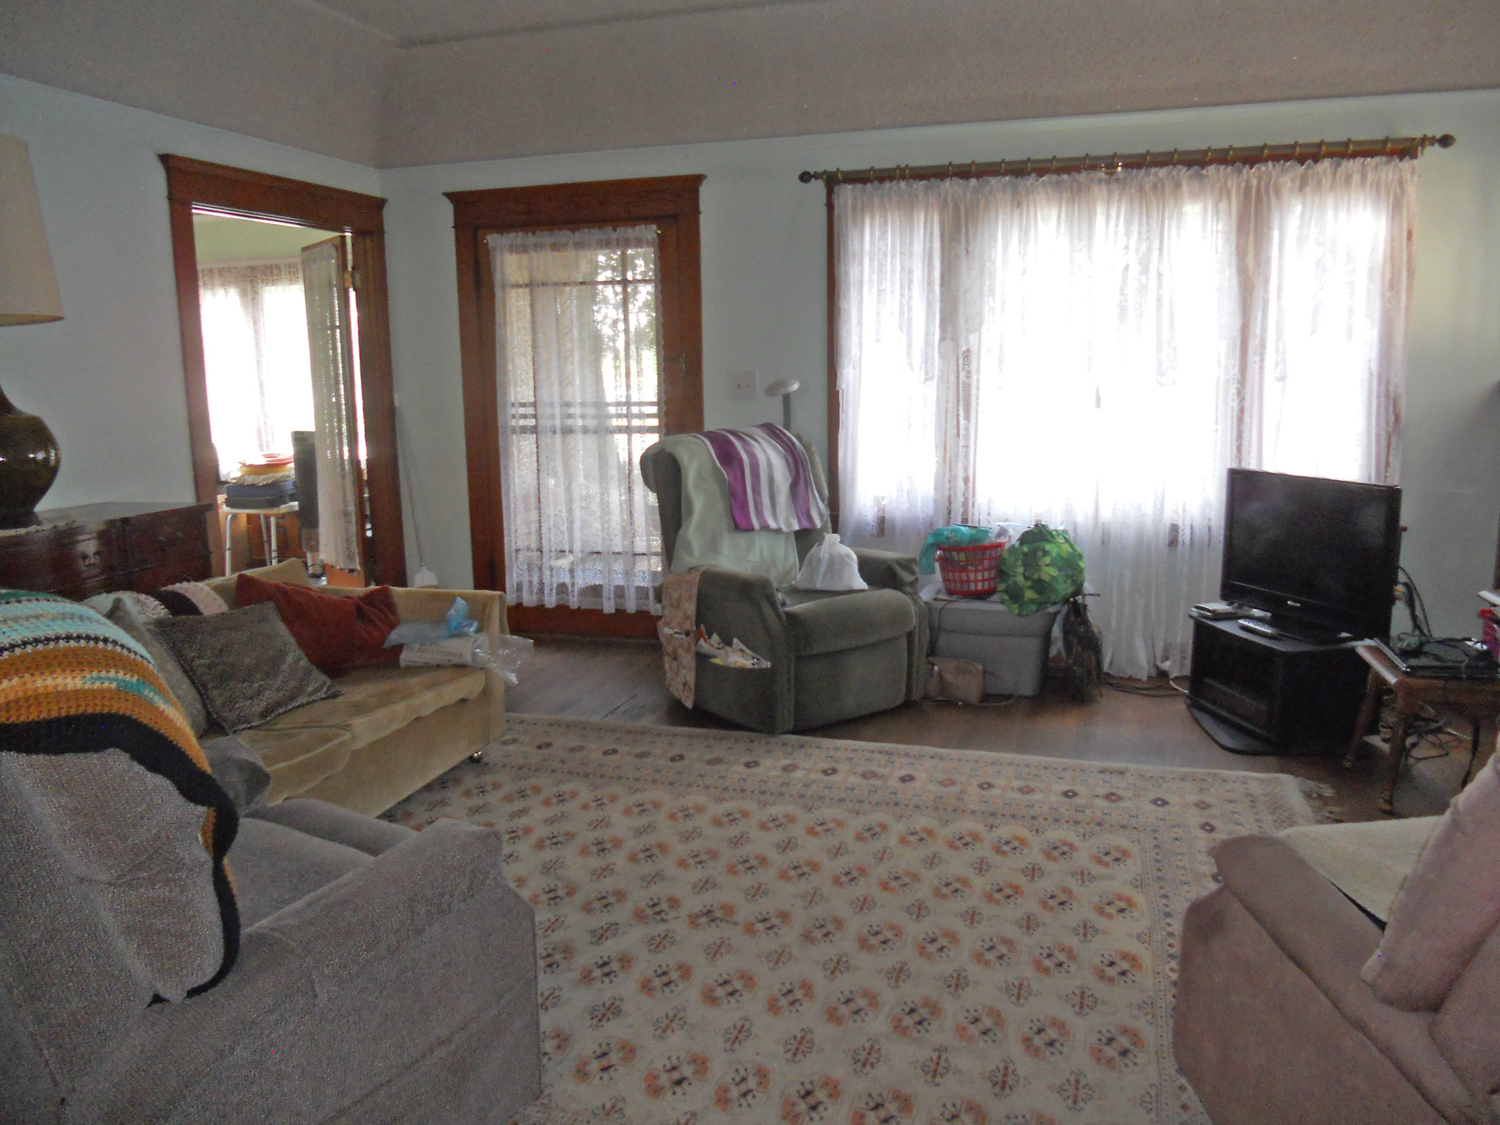 Spacious living room with lots of original woodwork throughout including hardwood floors.